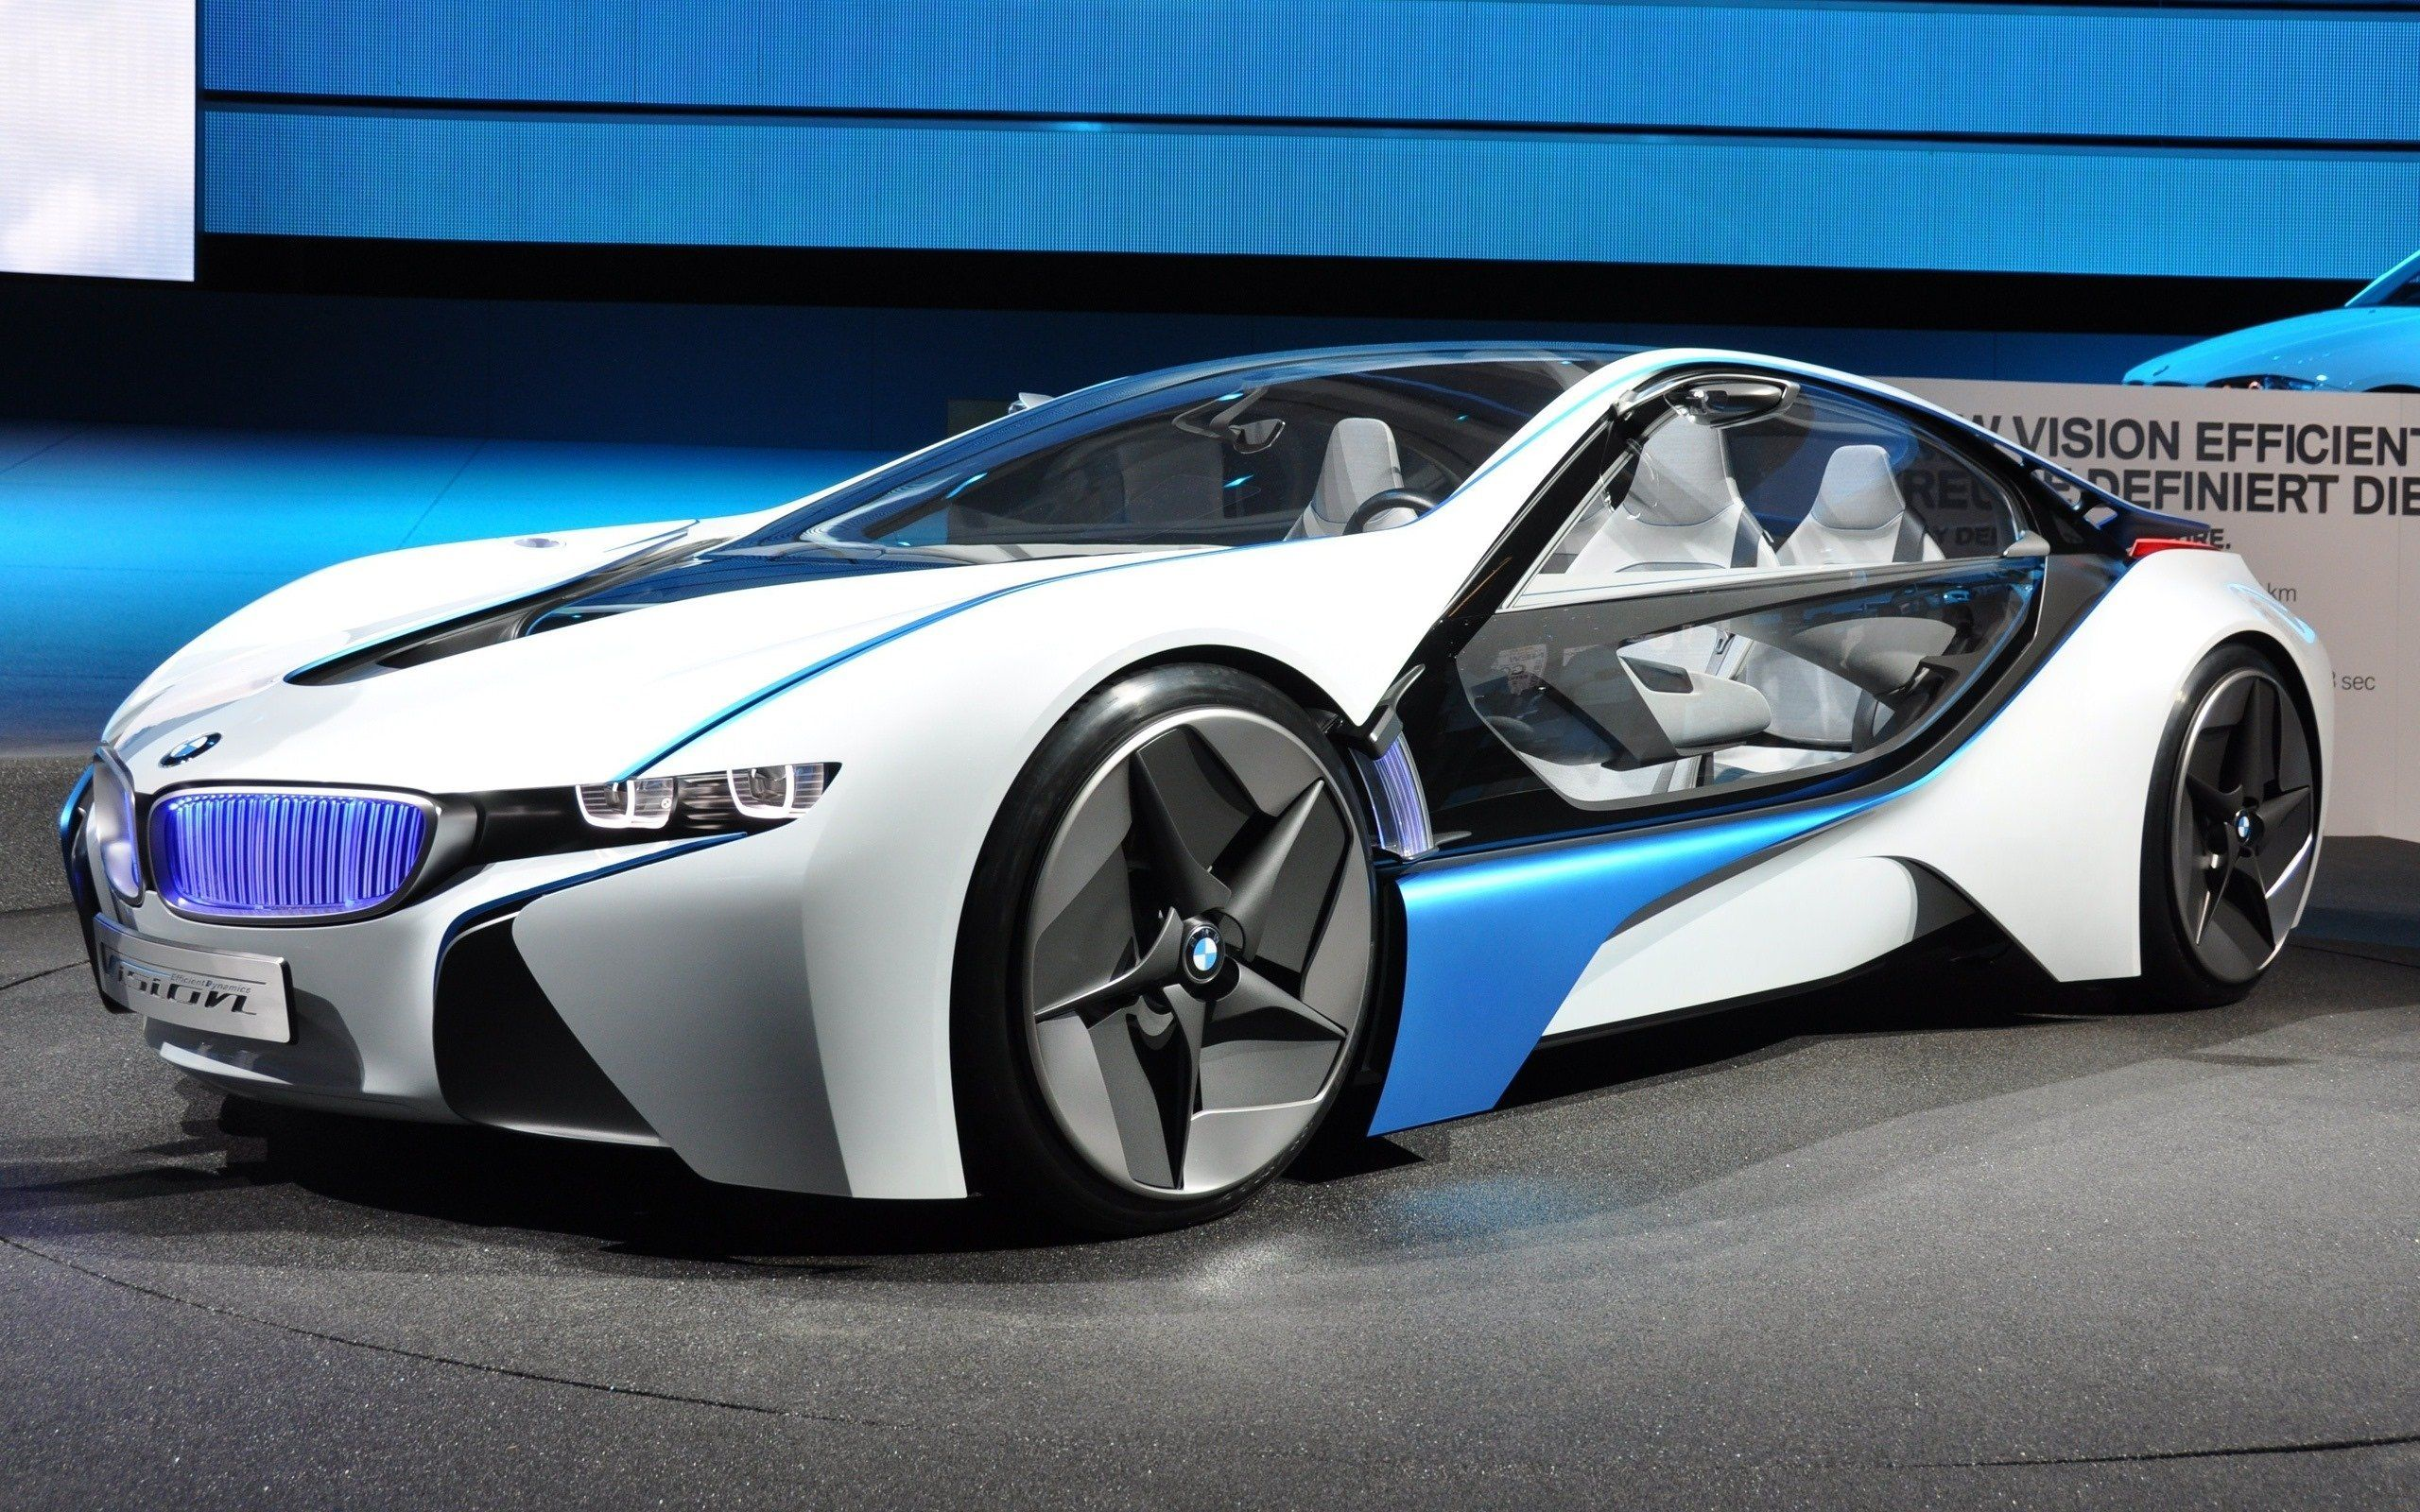 BMW Vision Connected Drive Concept Wallpaper HD Car | wallpapers ...